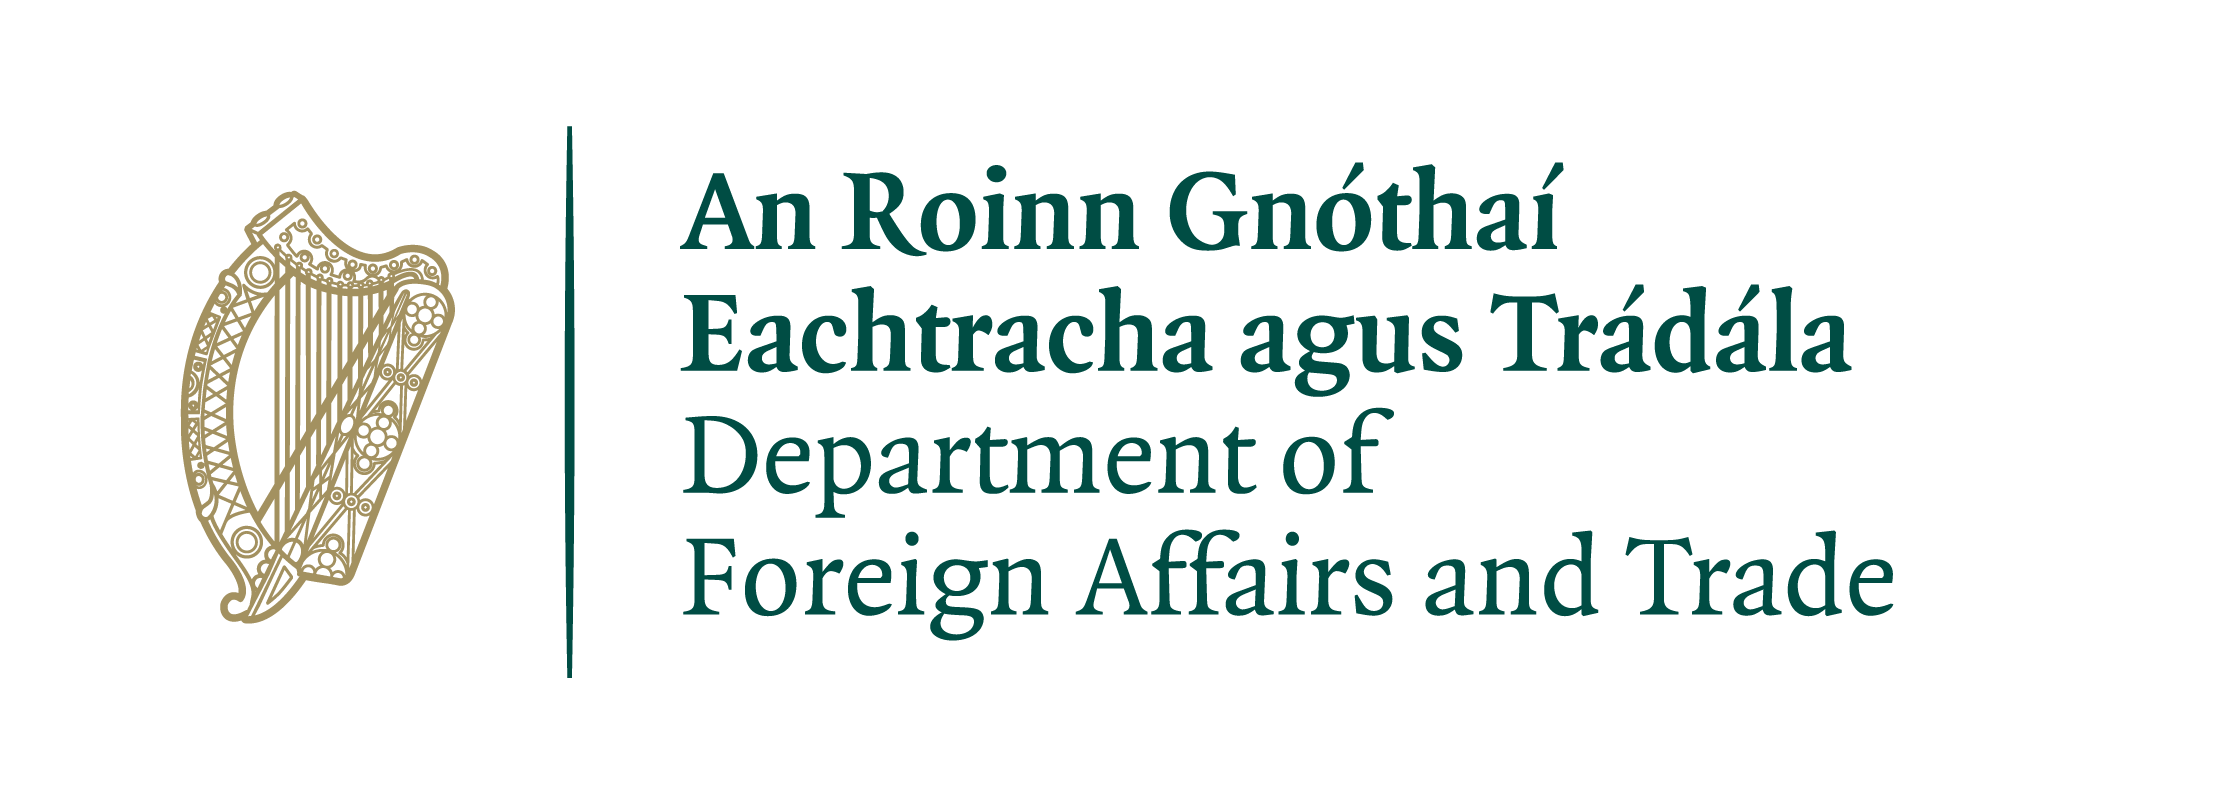 Irish_Department_of_Foreign_Affairs_and_Trade_logo